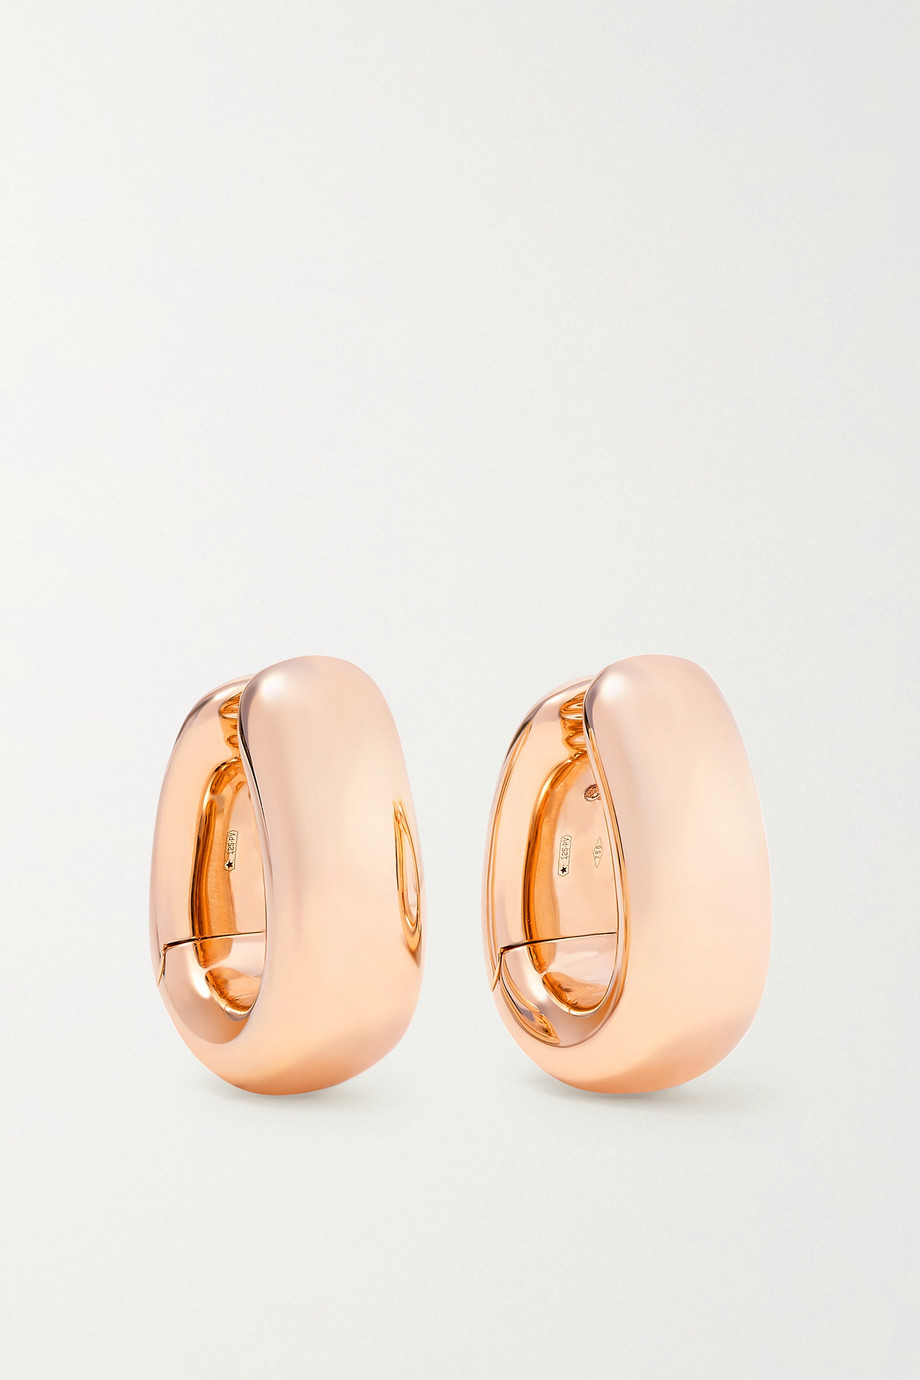 POMELLATO Iconica 18-karat rose gold hoop earrings